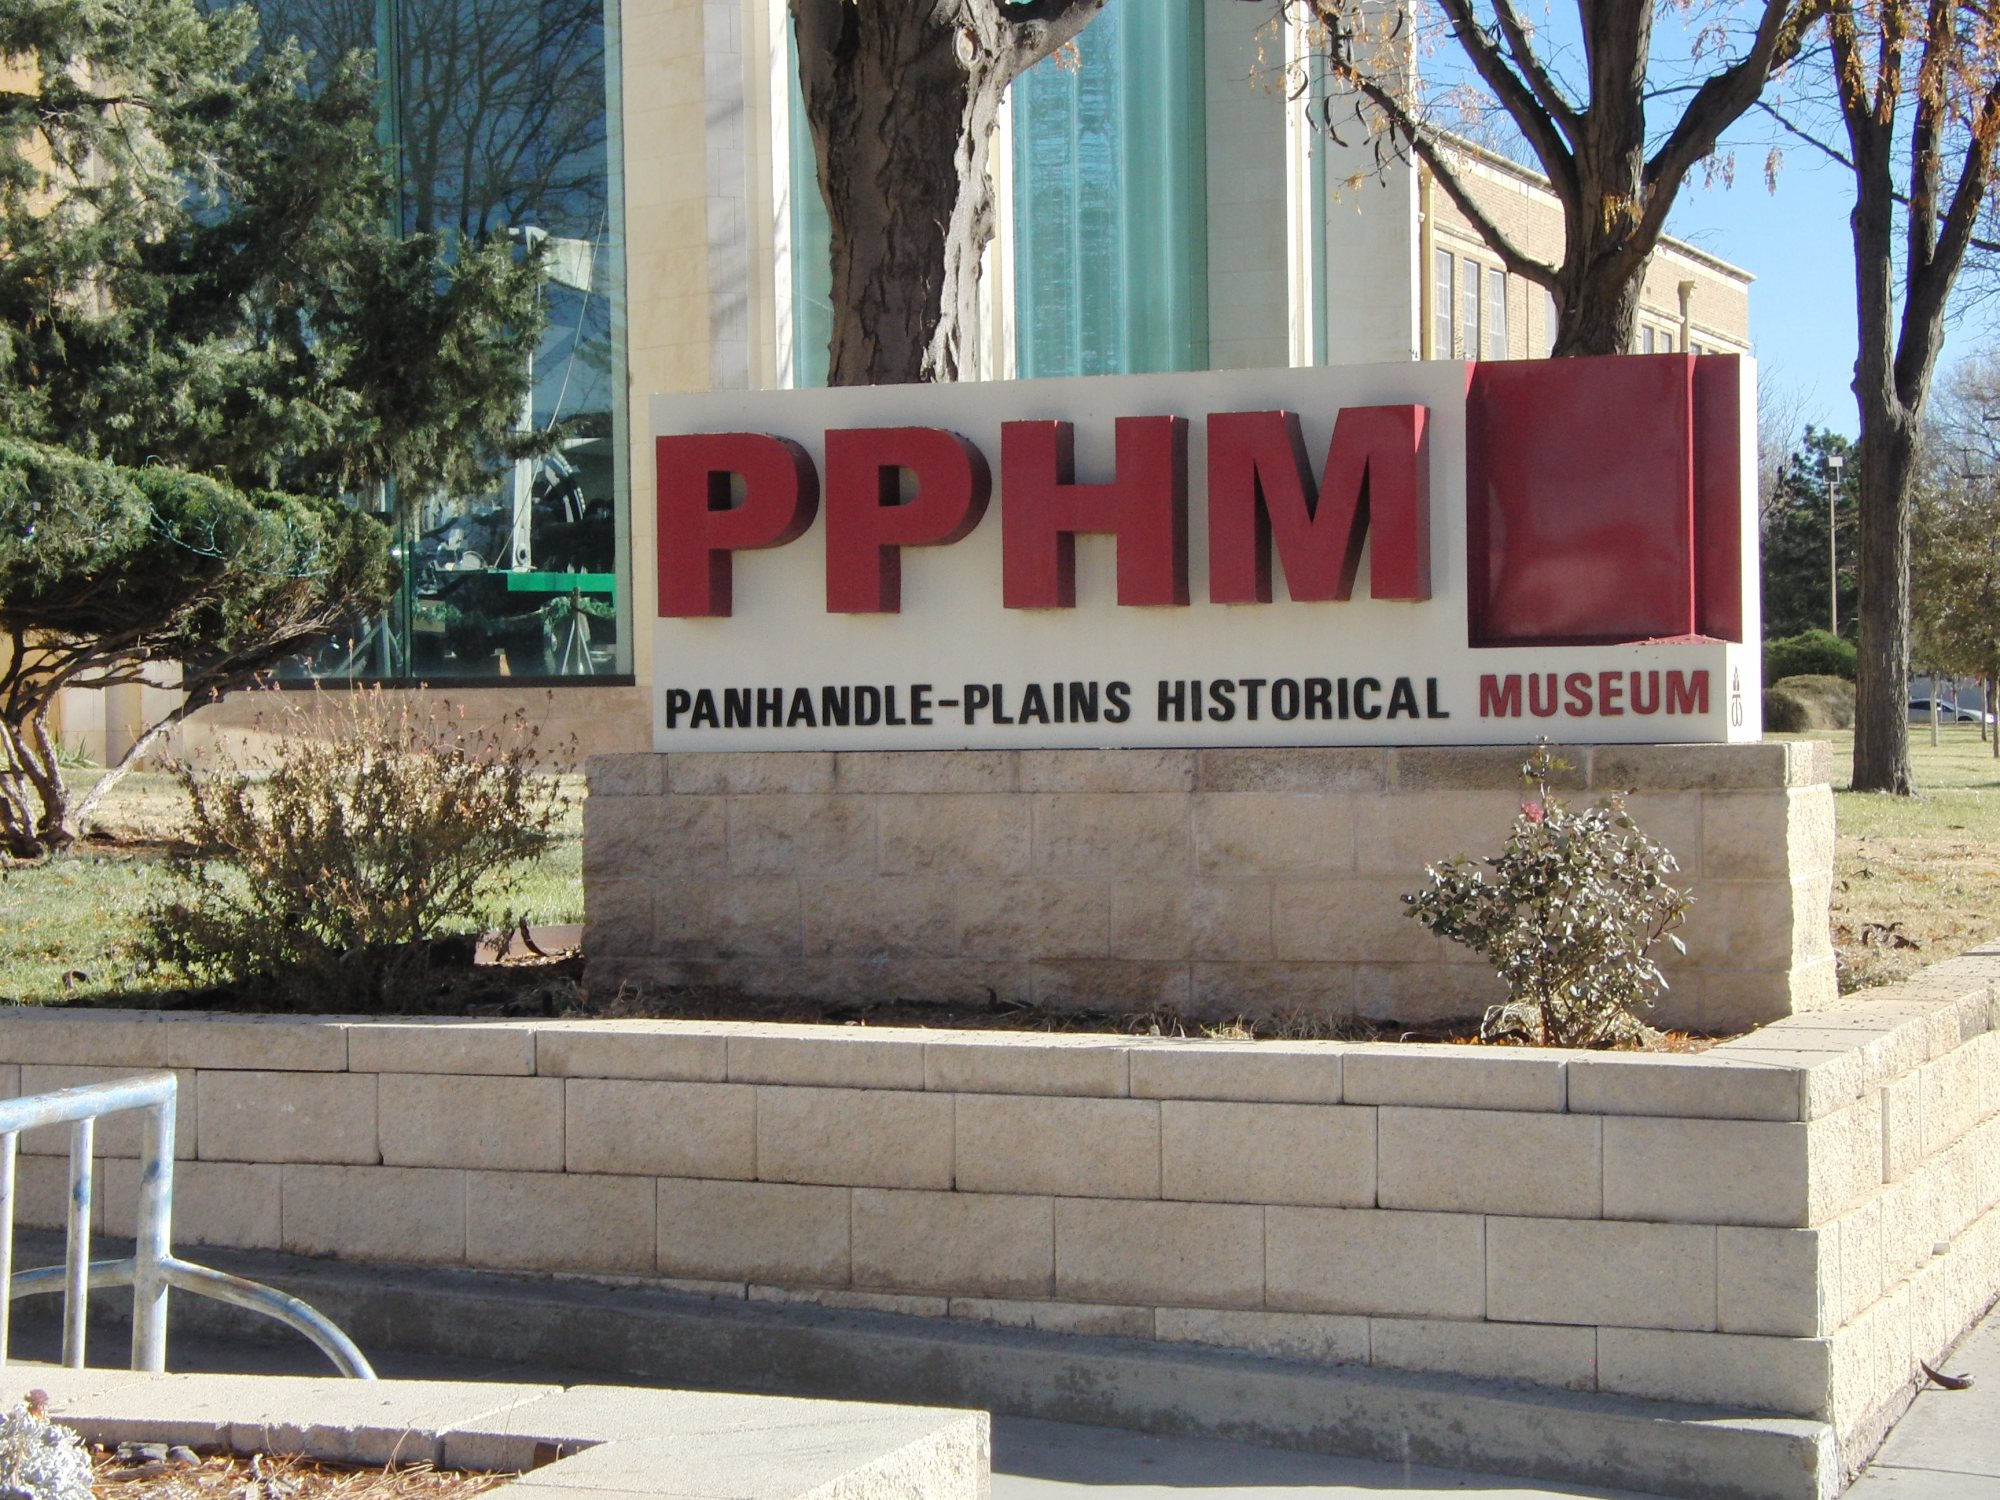 PANHANDLE-PLAINS HISTORICAL MUSEUM_1494019727021.jpg